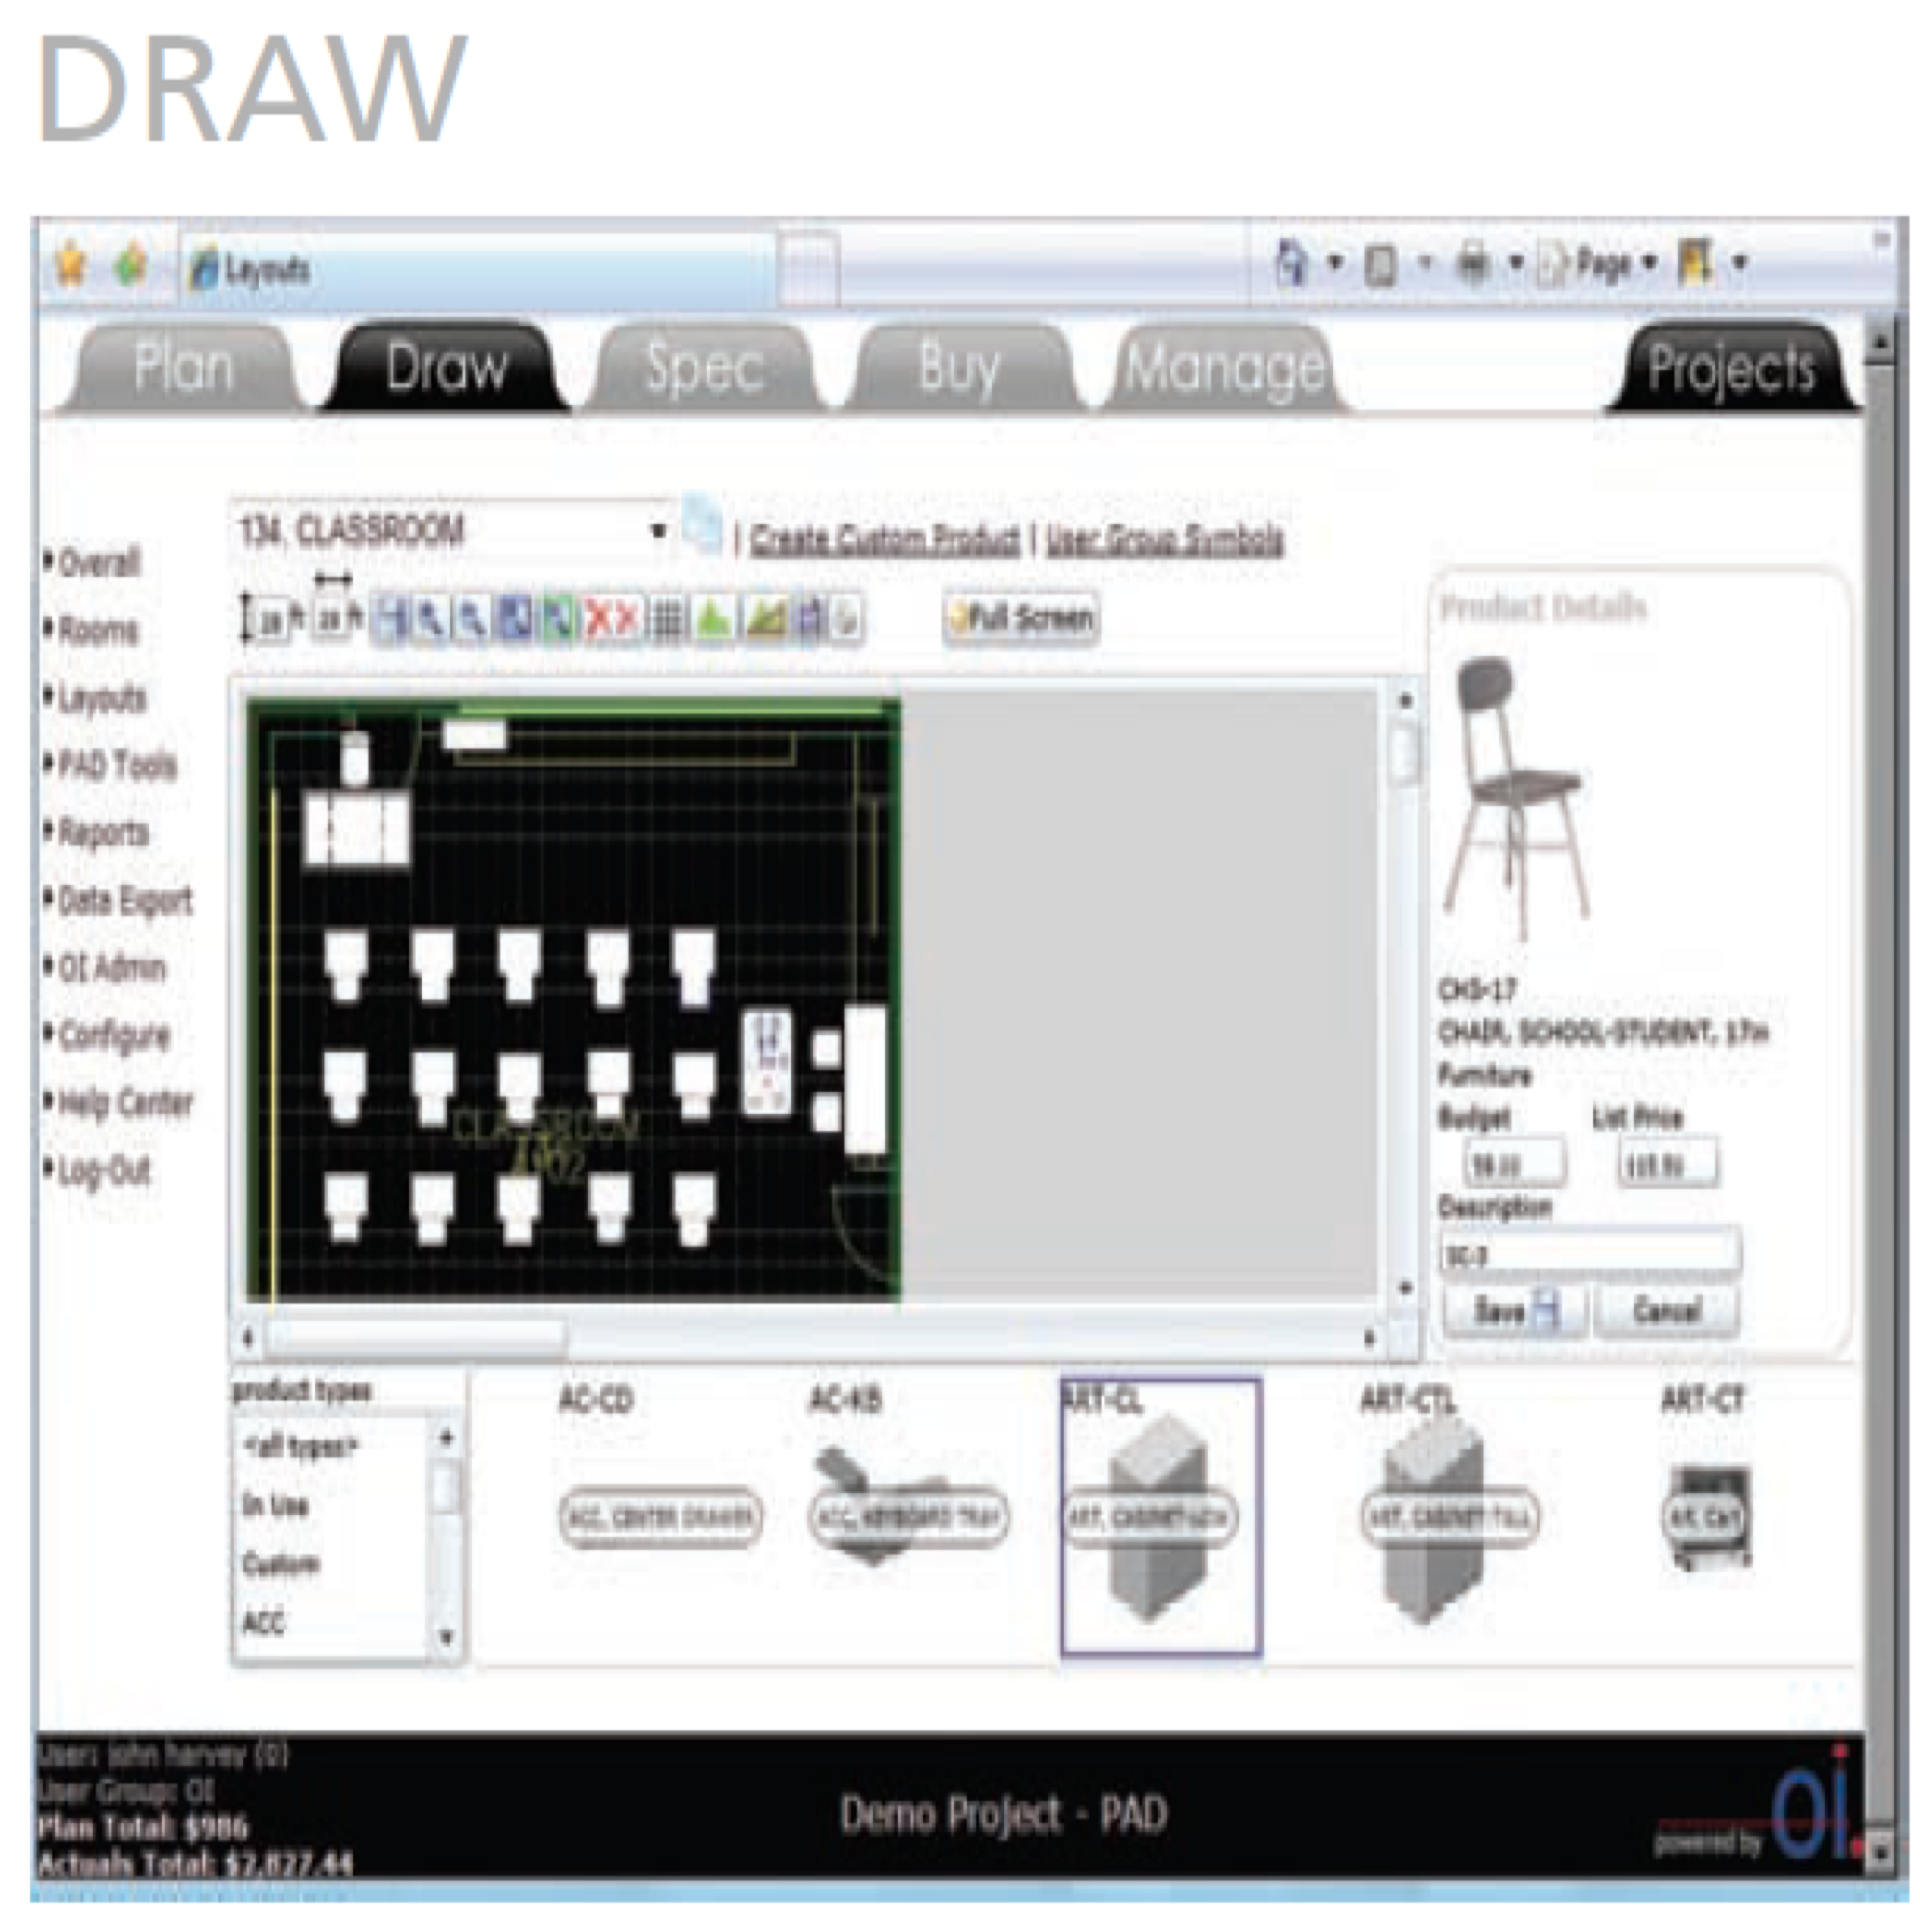 Draw2Spec™ Modules | FF&E Interior Design | FF&E Software